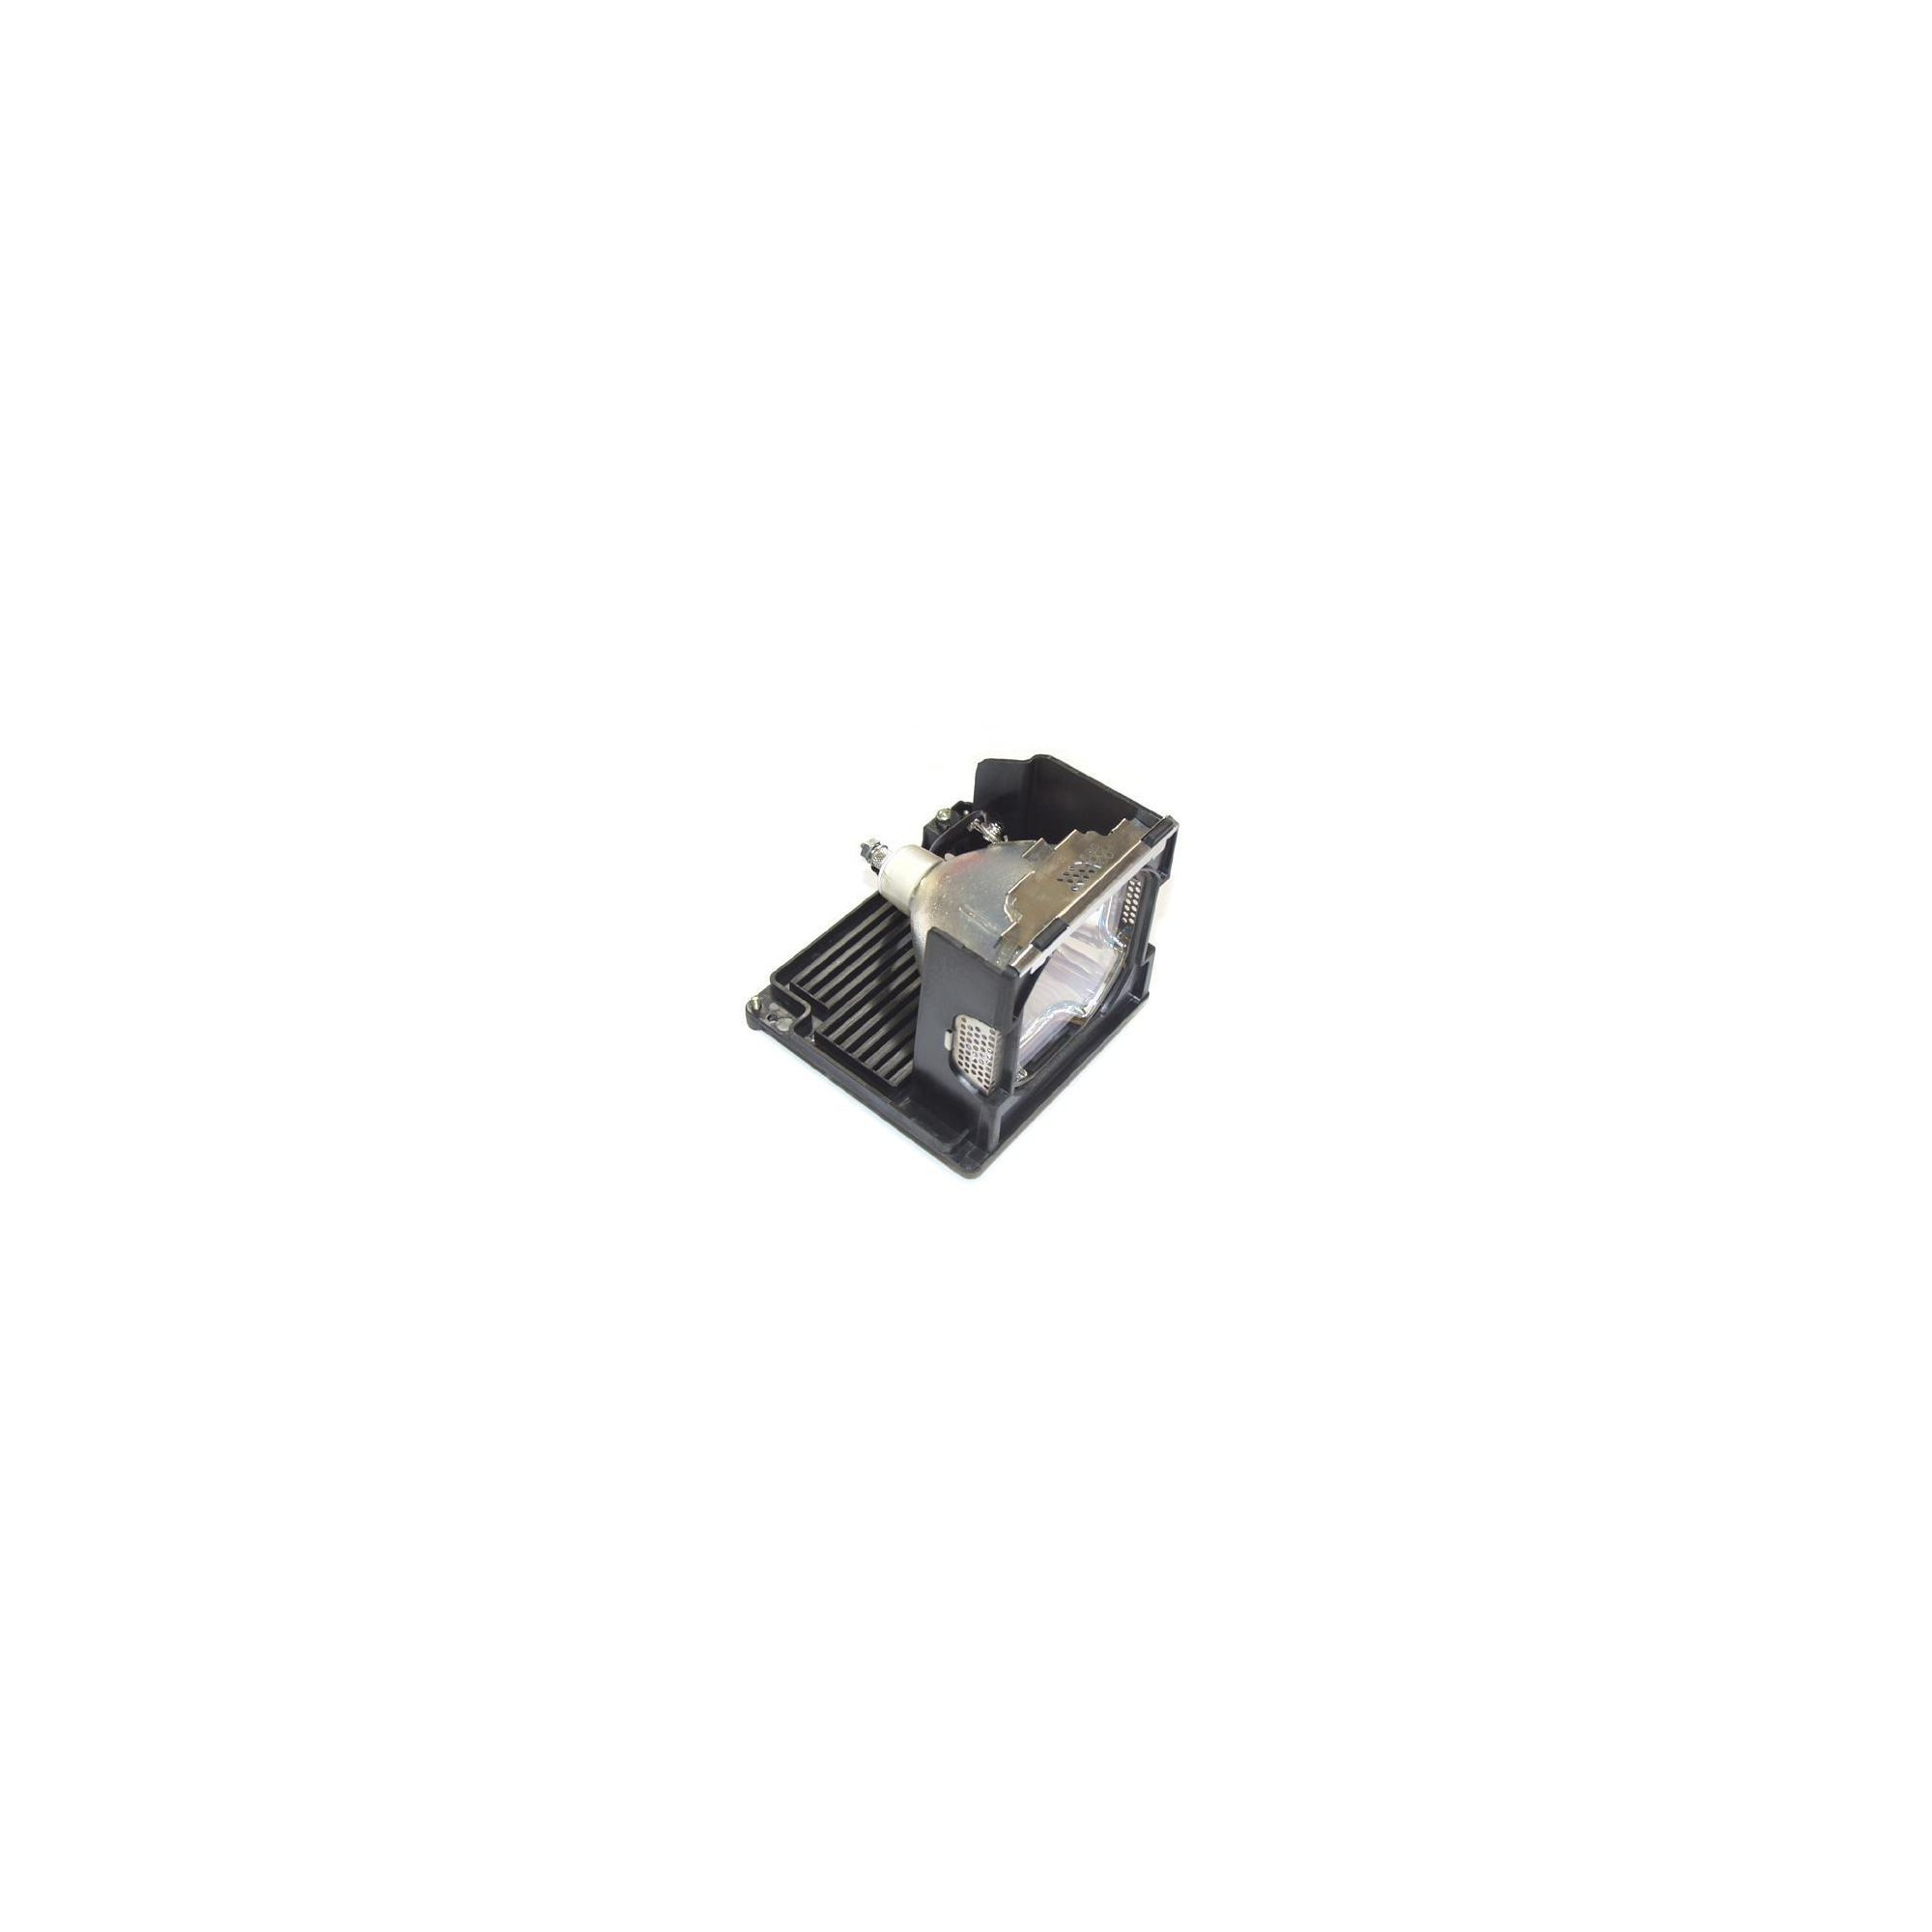 Sanyo Replacement Lamp Module for PLC-XP40/PLC-XP45/PLV-Z70 Projectors at Tesco Direct